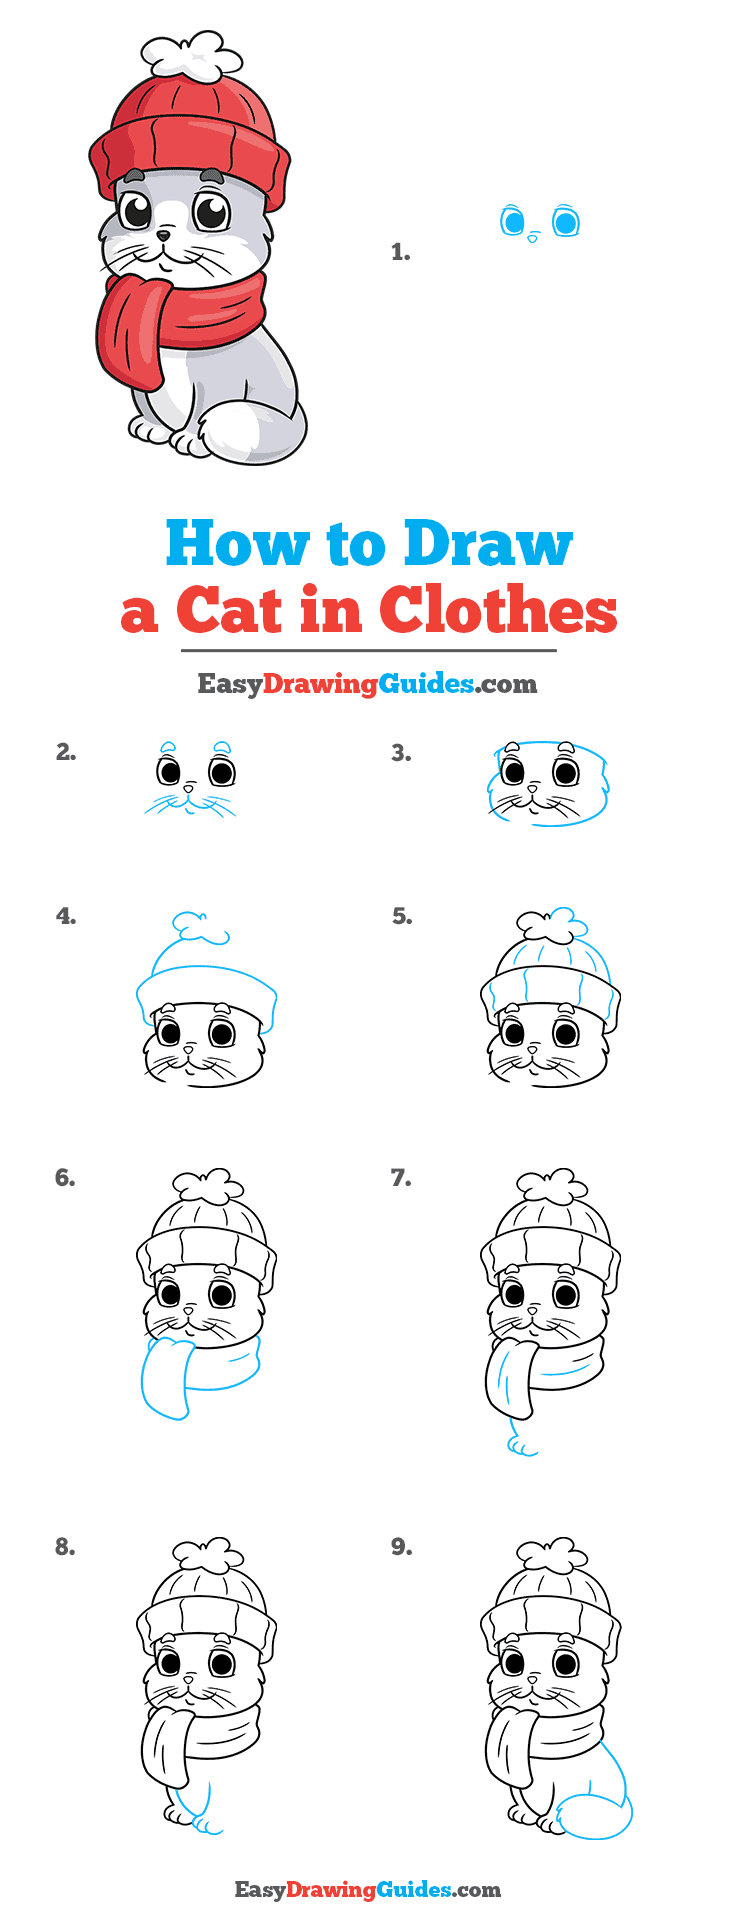 How to Draw a Cat in Clothes Step by Step Tutorial Image